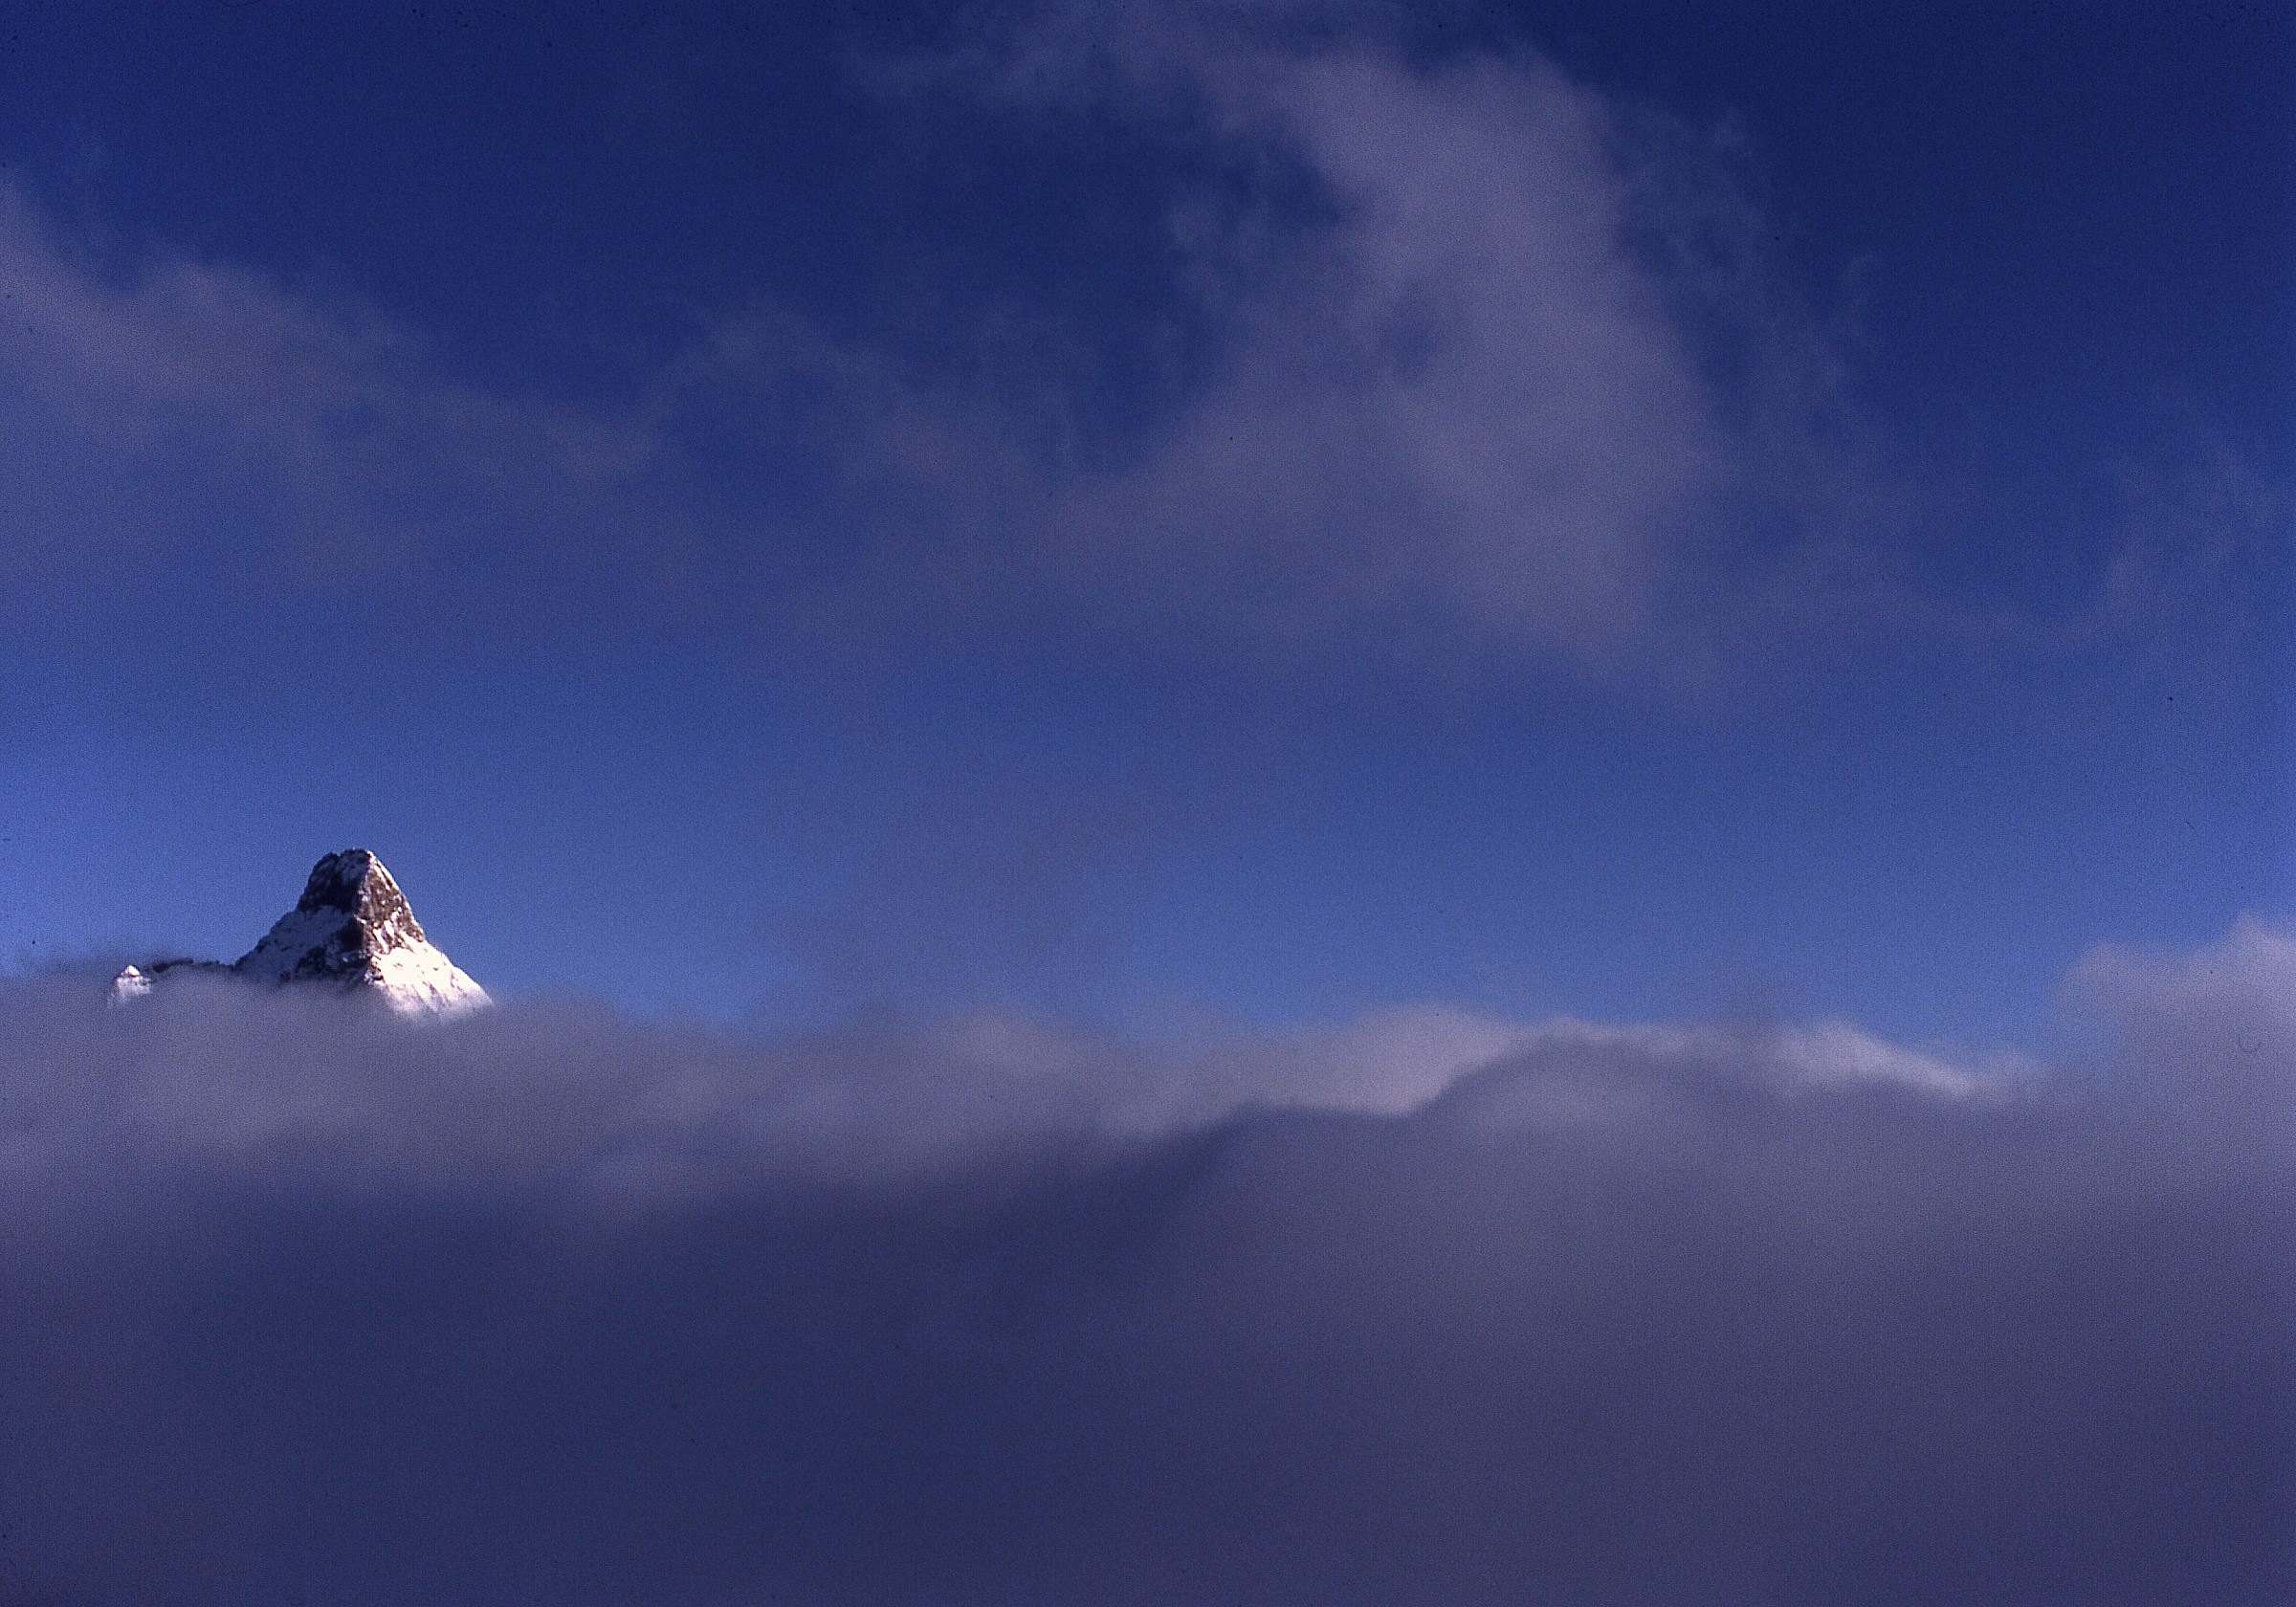 Crvino and clouds ......